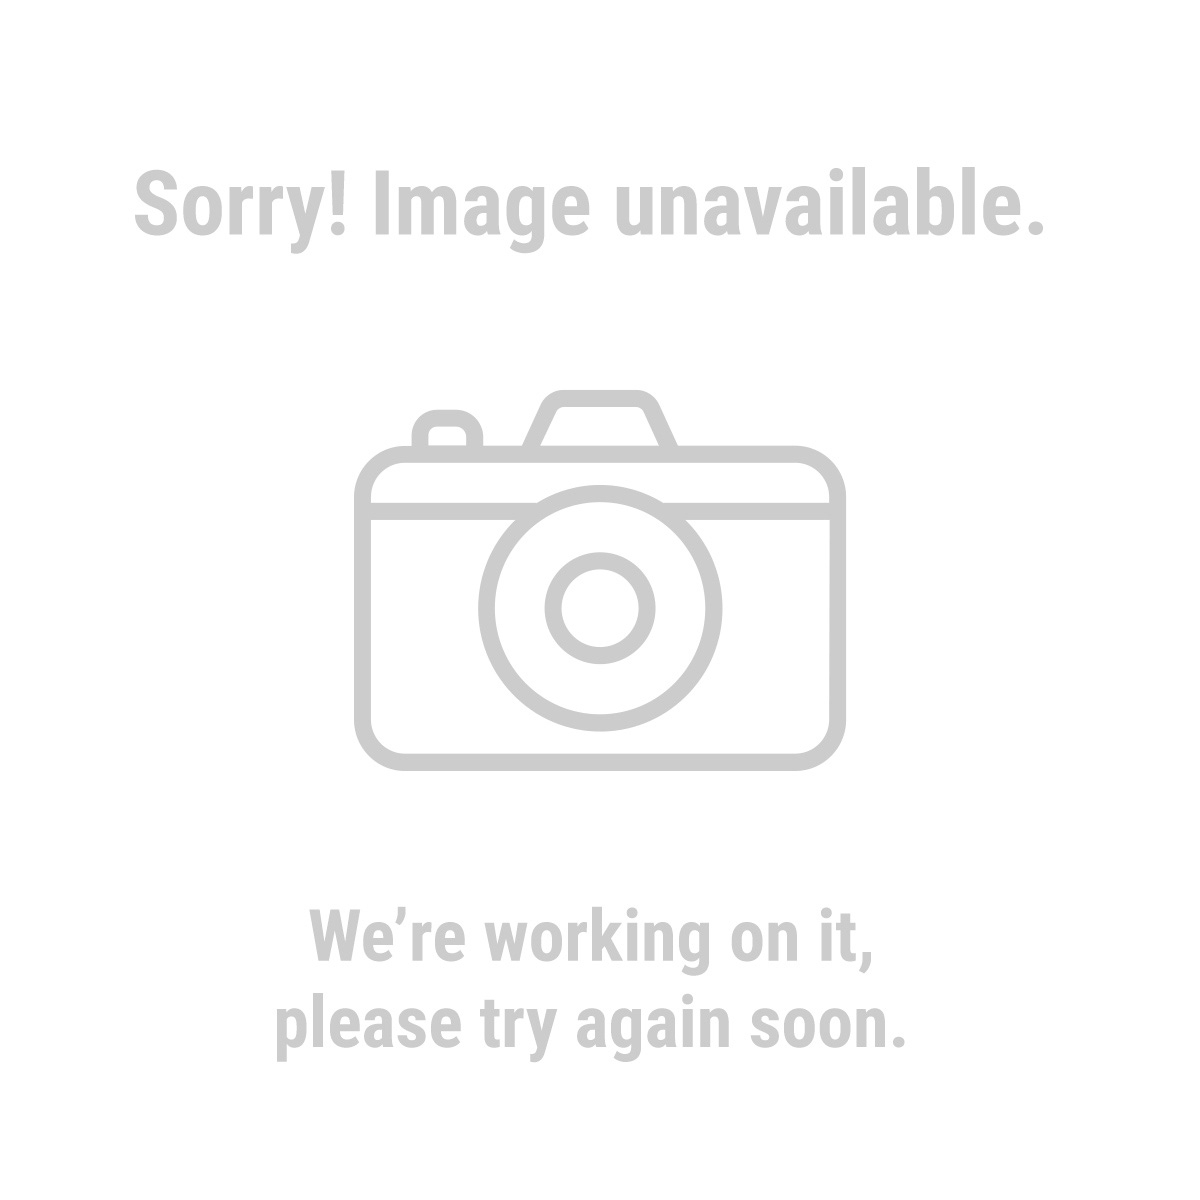 37 in. x 13 in. x 12 in.  Large Animal Trap